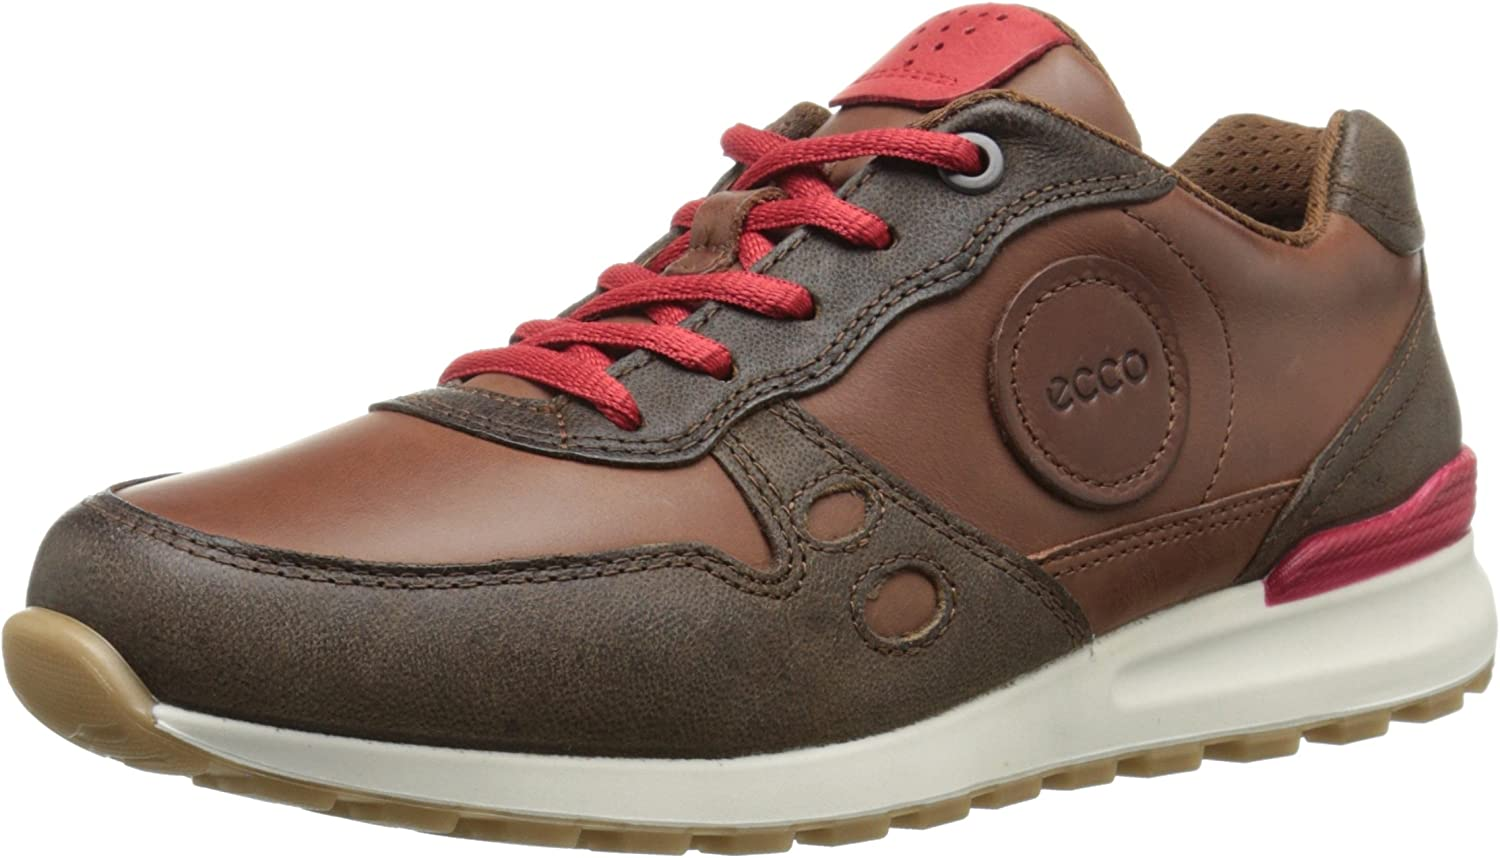 Ecco Footwear Womens CS14 Casual Oxford